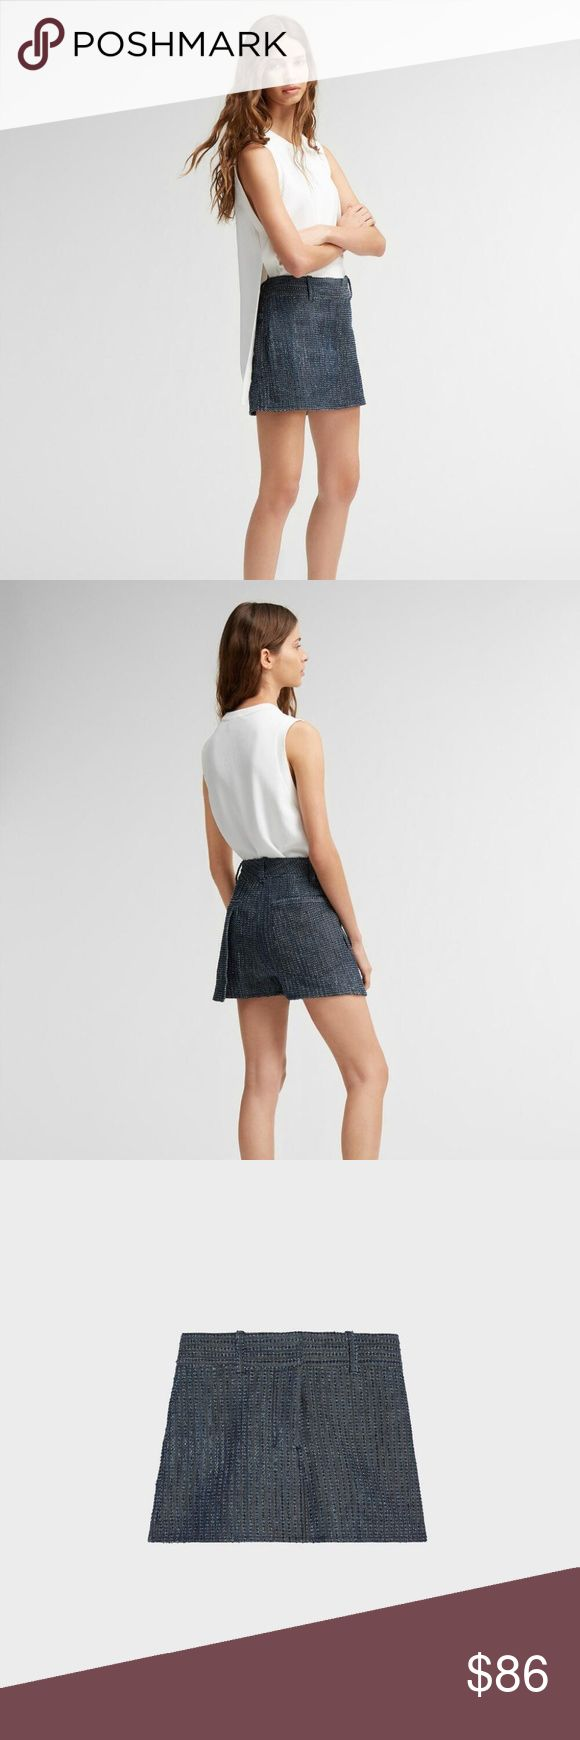 DKNY PURE PERFORATED TEXTURED DARK DENIM SKORT $198 NWT DKNY PURE PERFORATED TEXTURED DENIM SKORT  SIZE: sz 4 COLOR: Indigo / dark blue  BRAND NEW WITH TAGS MEASUREMENTS IN PHOTOS  A textured denim short with skirt overlay ideal for giving your spring uniform a modern, graphic update Front skirt overlay belt loops Inside hook & bar closure Side seam pockets Origin: Imported 401 Natural (Vegetable)->Cotton DKNY PURE Perforated Denim Skort from DKNY. DKNY Shorts Skorts